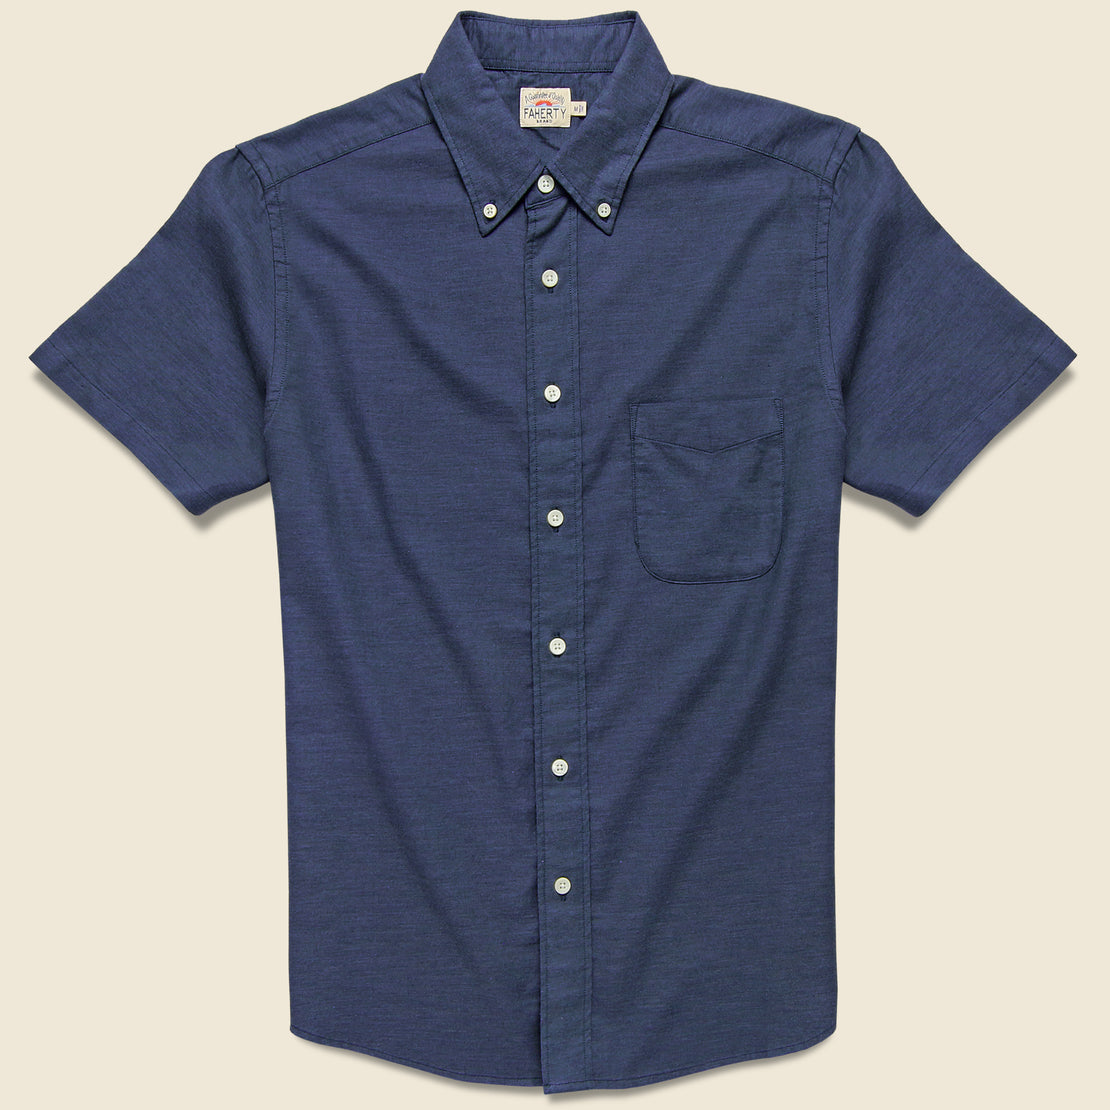 Faherty Stretch Oxford Shirt - Navy